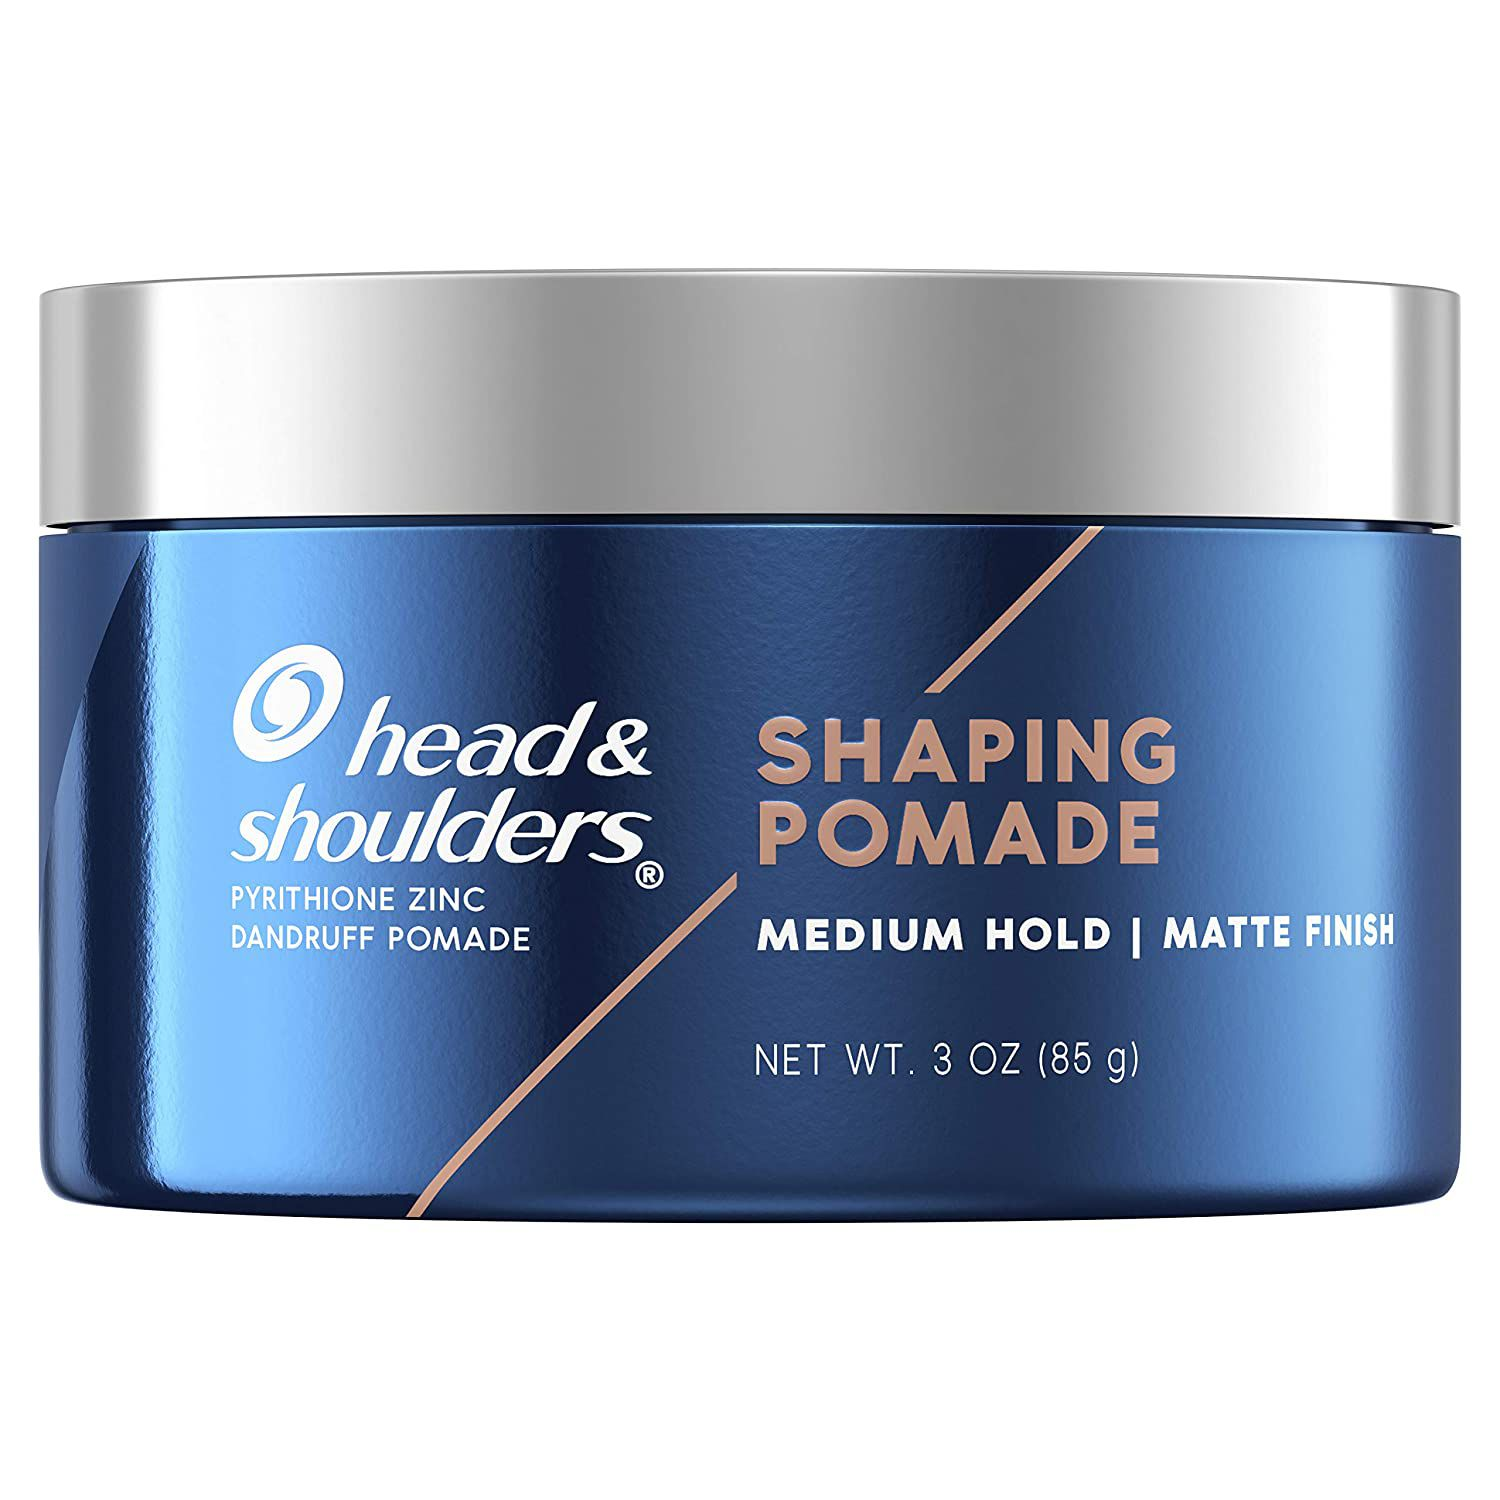 Head & Shoulders Shaping Pomade